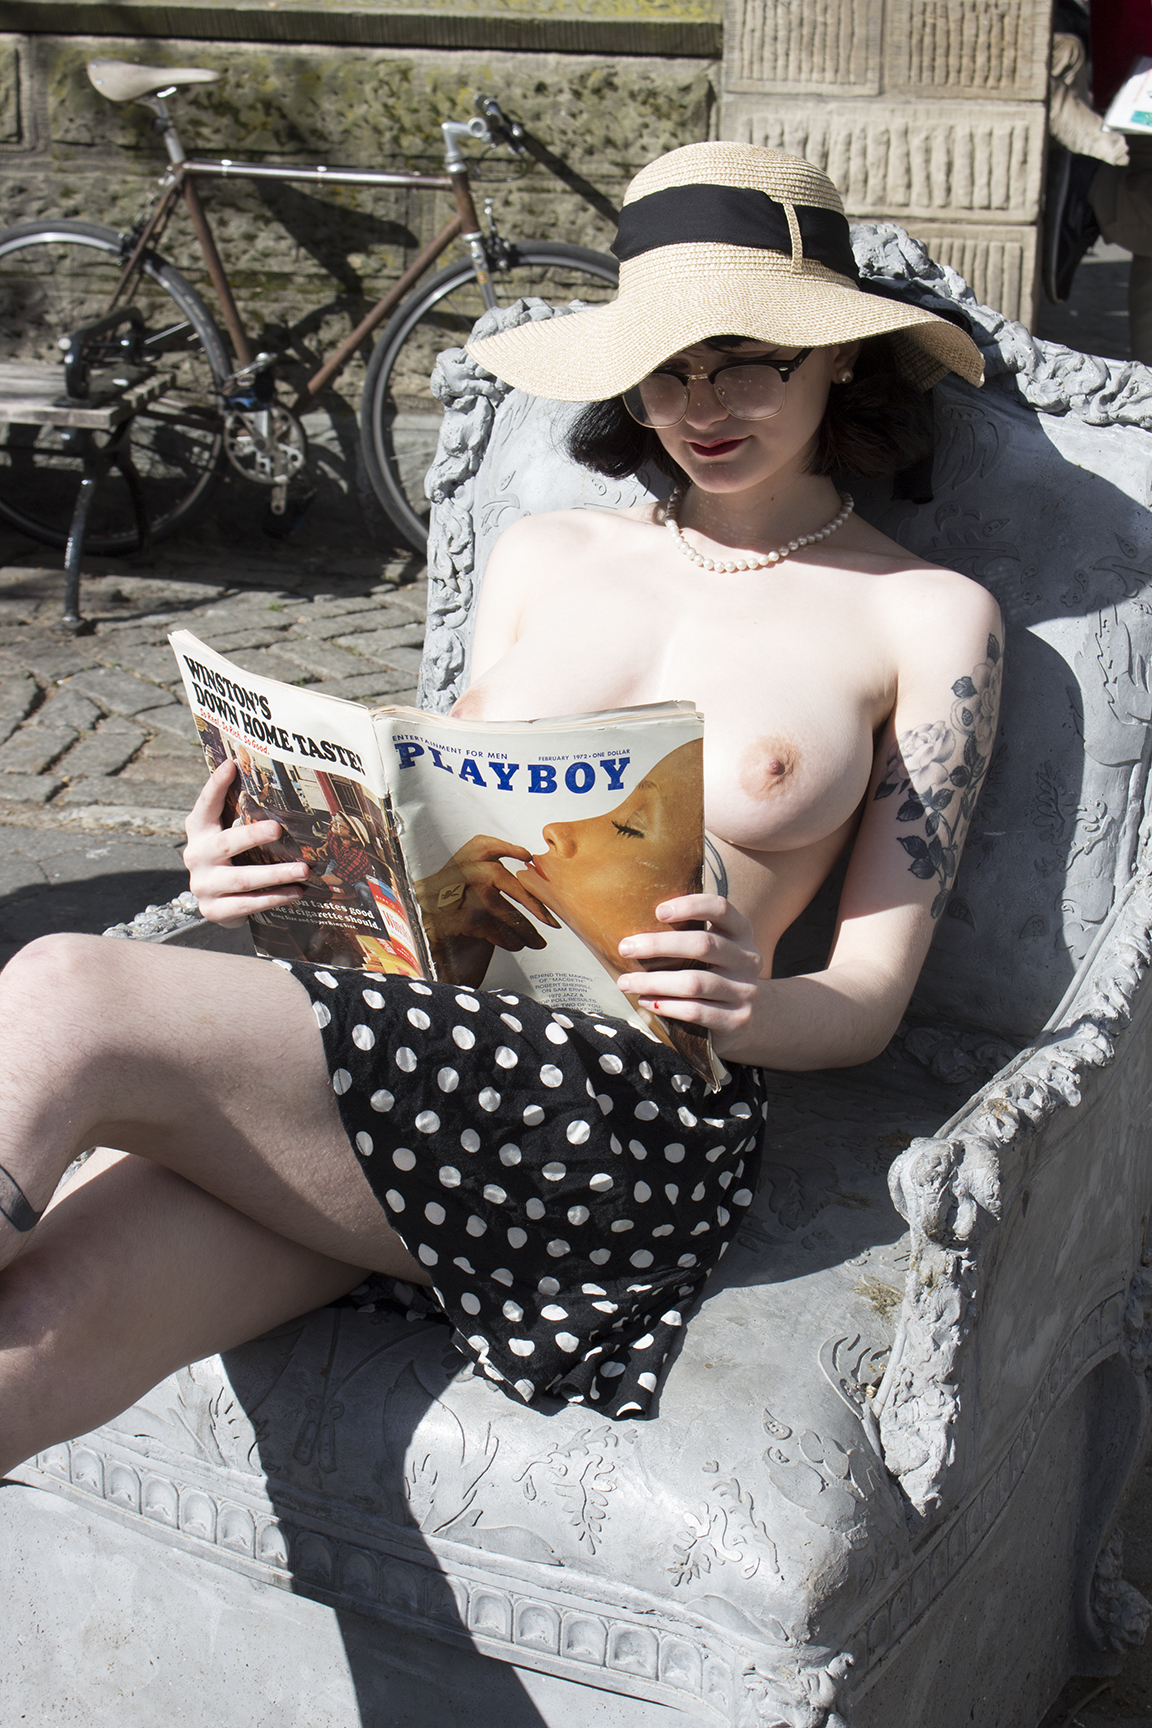 hot step mom fucks her step son #centralpark #erasernipples #erectnipples #ginger #glasses #hugefavs #largenipples #newyorkcity #nyc #outdoor #pale #public #reading #redhead #redhead #skirt #stockings #topless #topless #toplessinpublic